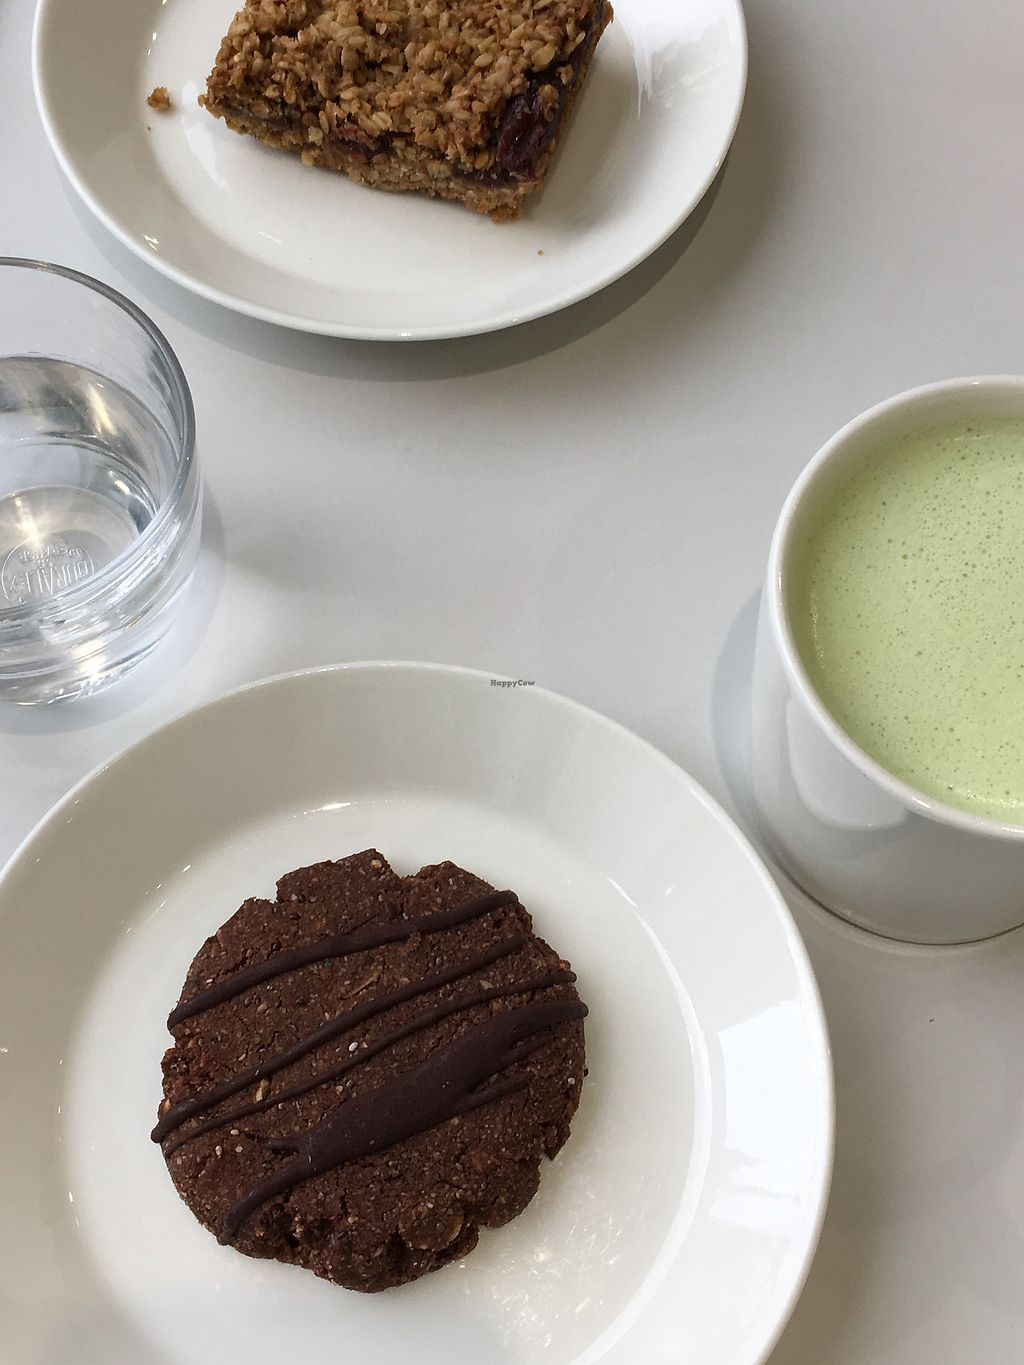 "Photo of Modern Baker  by <a href=""/members/profile/treehousecanoe"">treehousecanoe</a> <br/>Chocolate hazelnut cookie, matcha latte, date bar - ! Delicious! <br/> January 27, 2018  - <a href='/contact/abuse/image/63694/351551'>Report</a>"